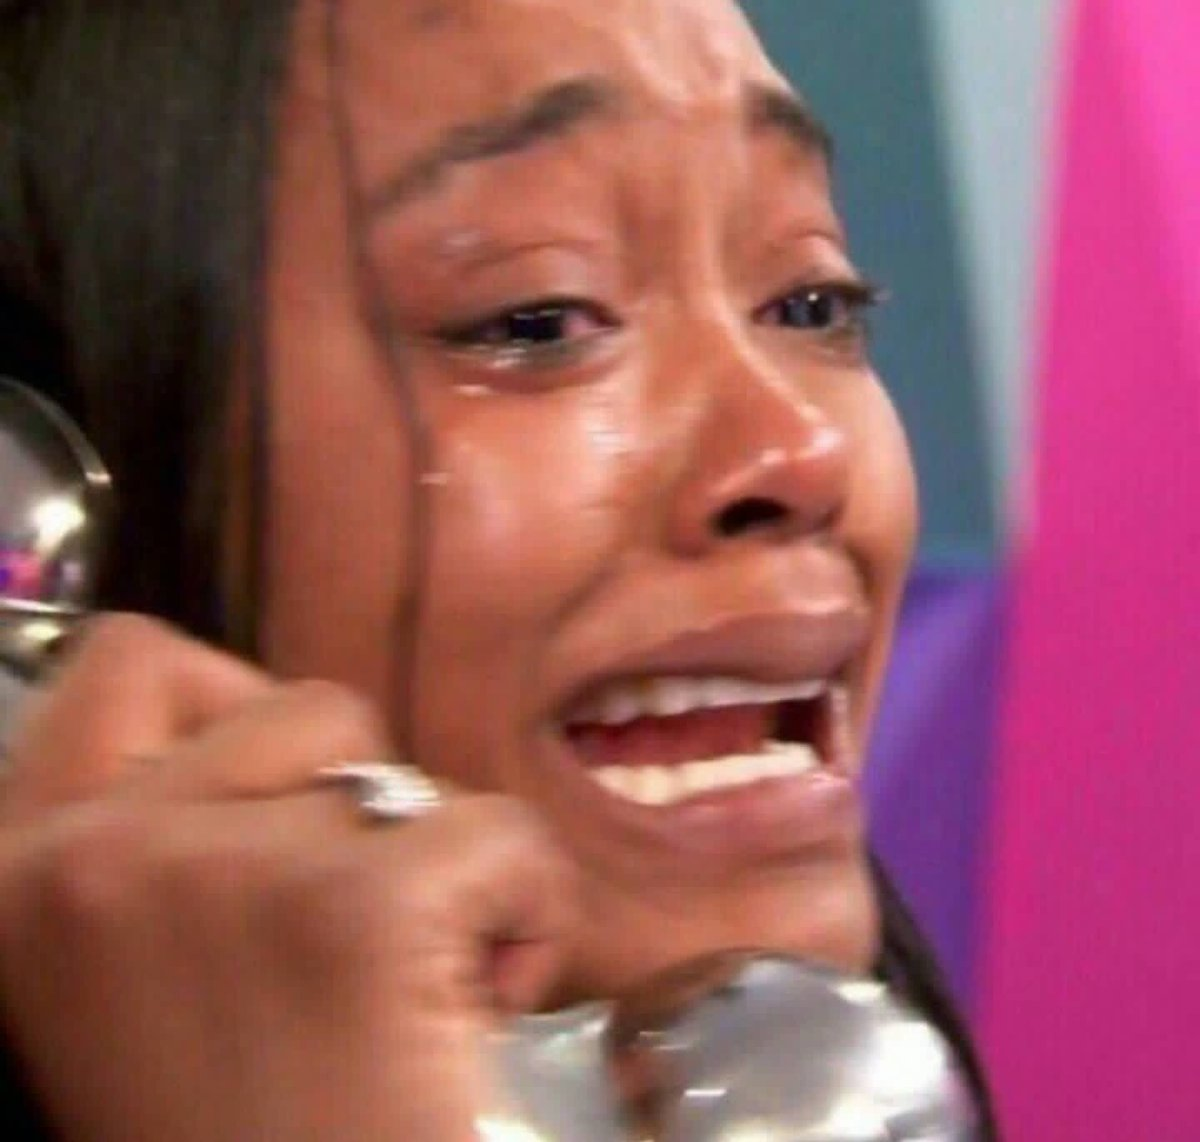 me calling my best friend when the smallest inconvenient thing happens to me